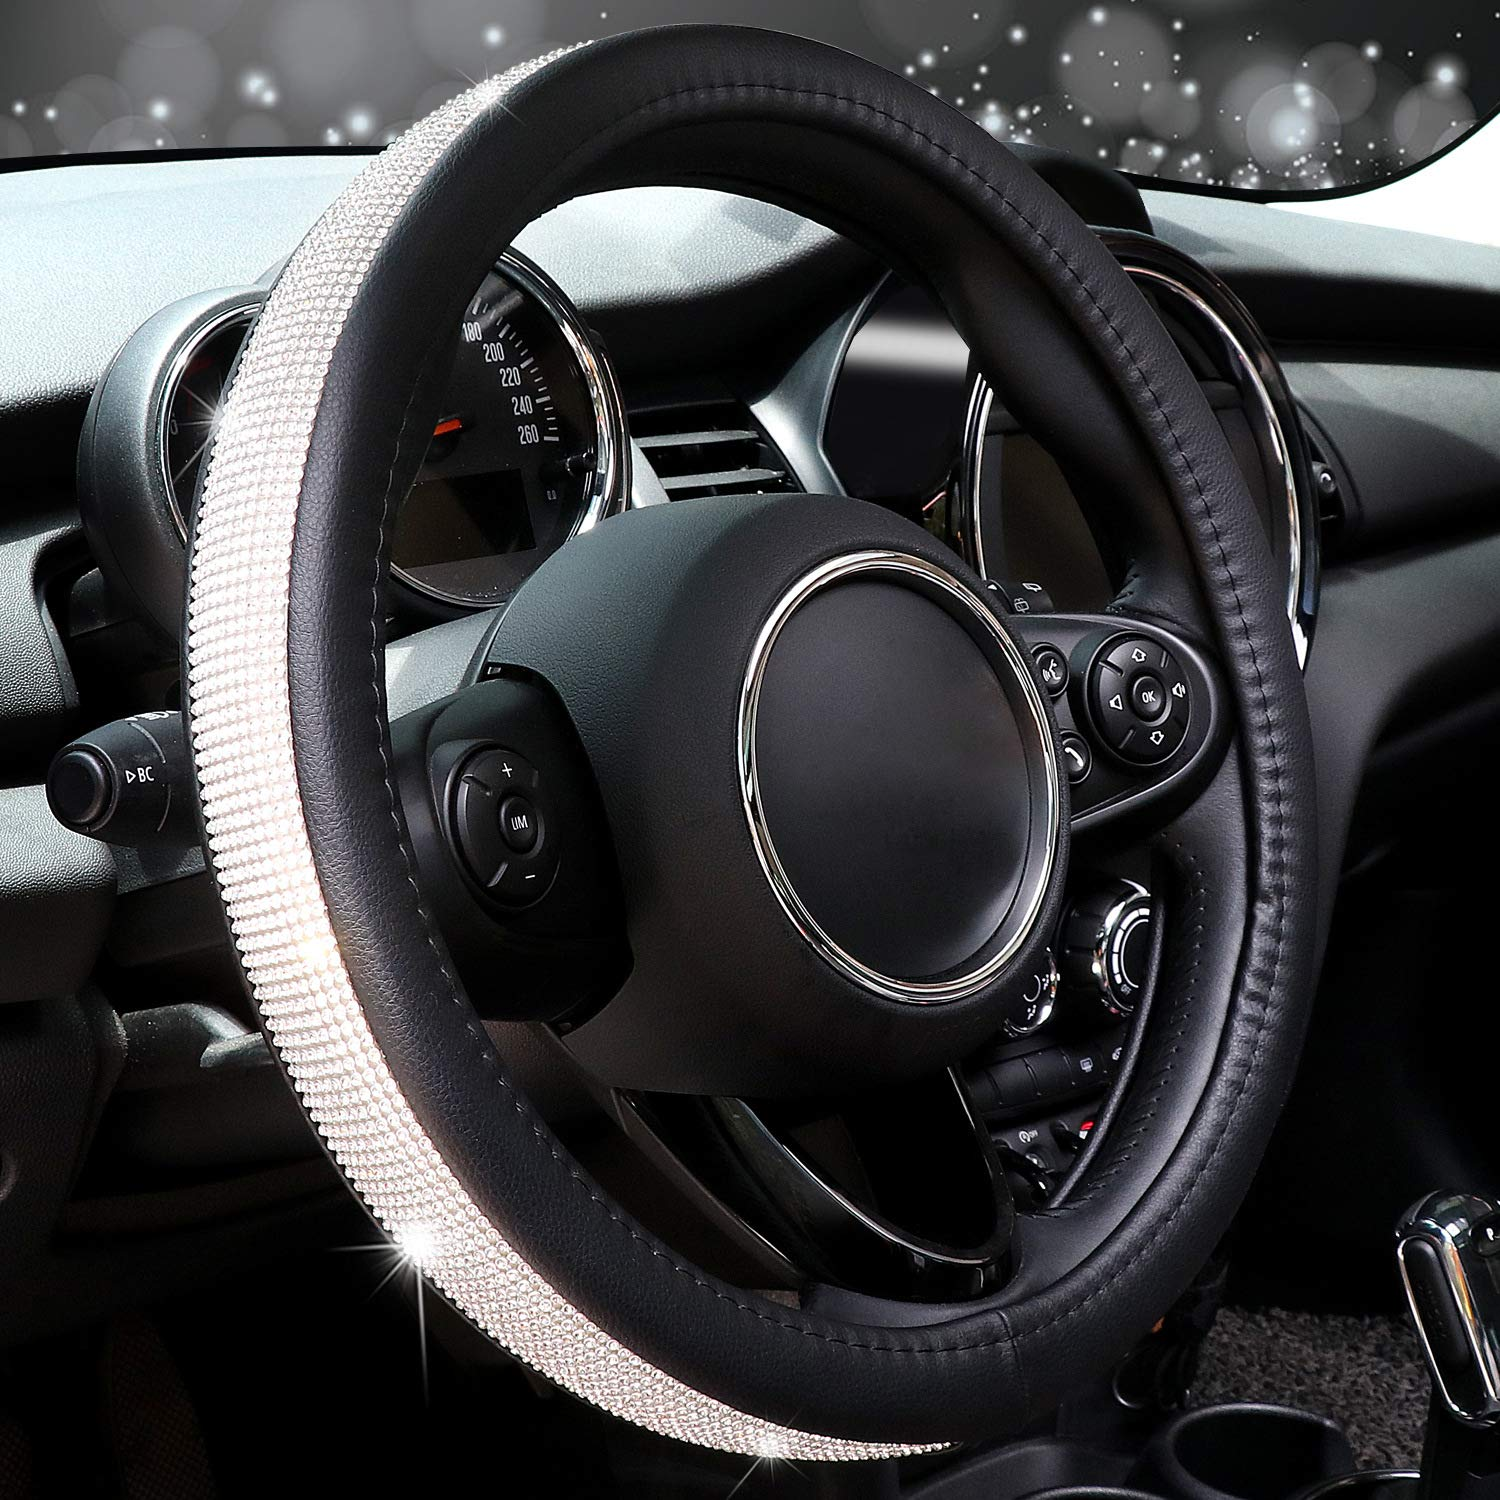 Grey and Black COFIT Breathable and Non Slip Microfiber Leather Steering Wheel Cover Universal L 39.2-41cm